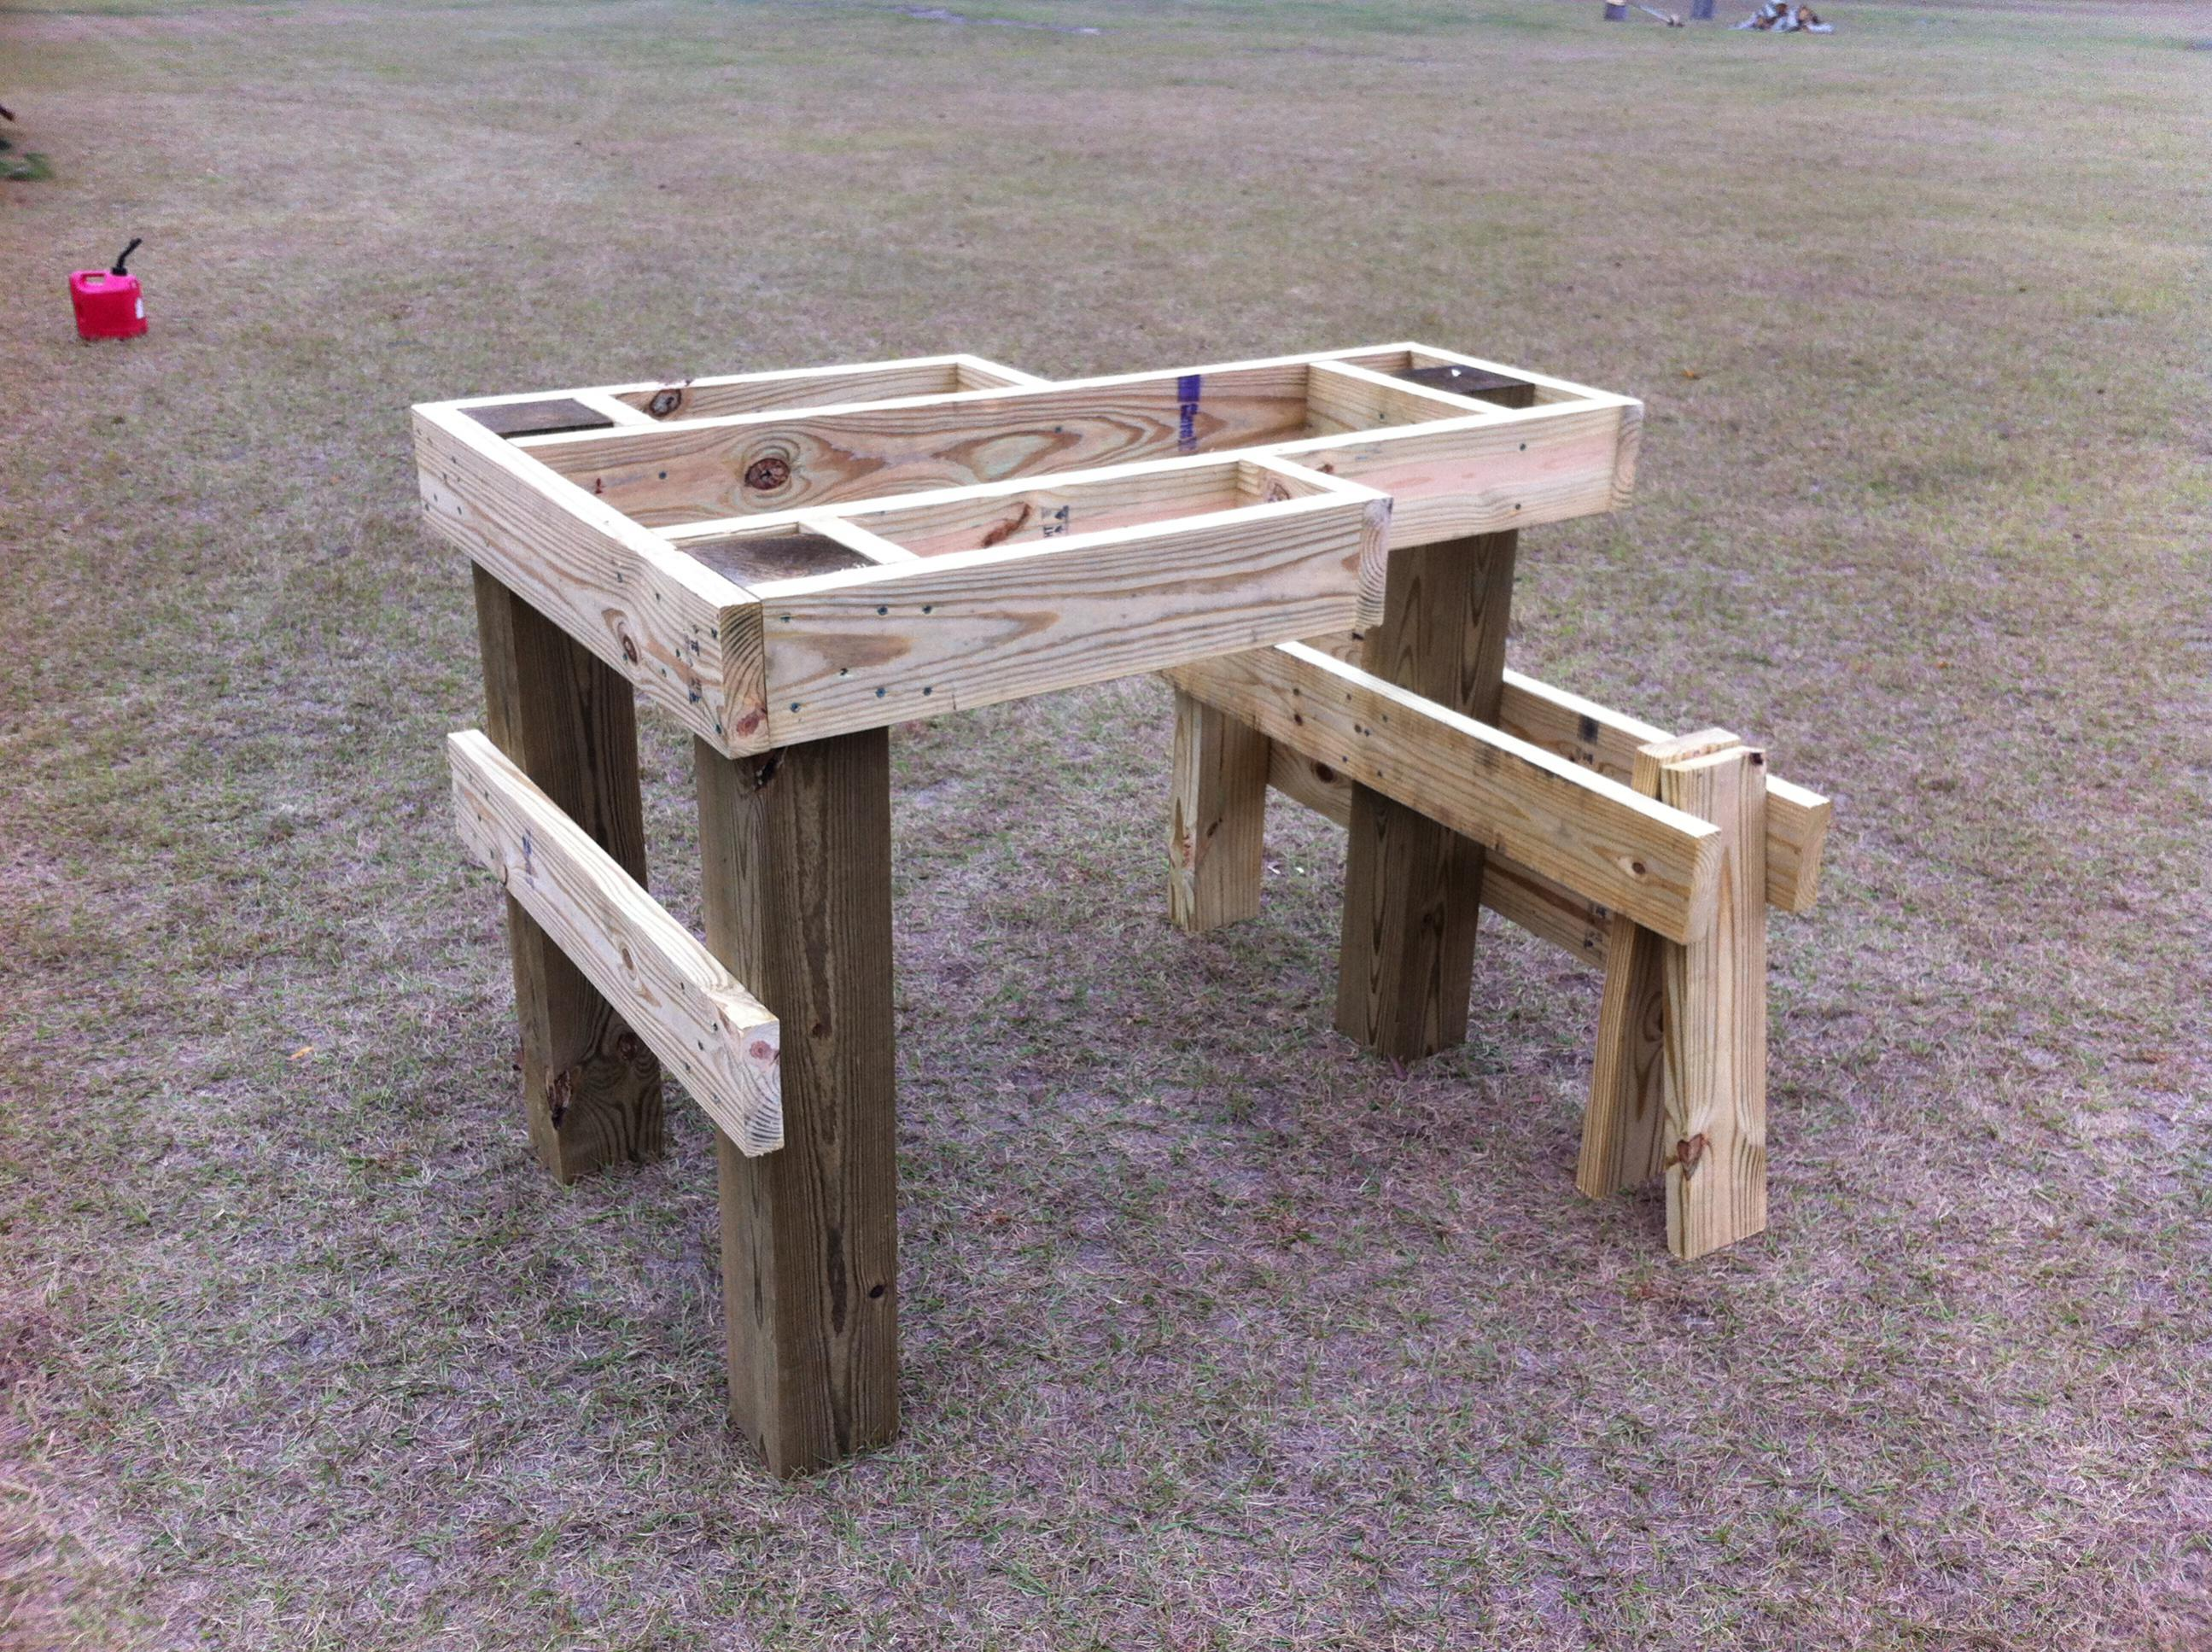 Best Portable Shooting Bench | Plans for Portable Shooting Bench | How to Build A Shooting Bench